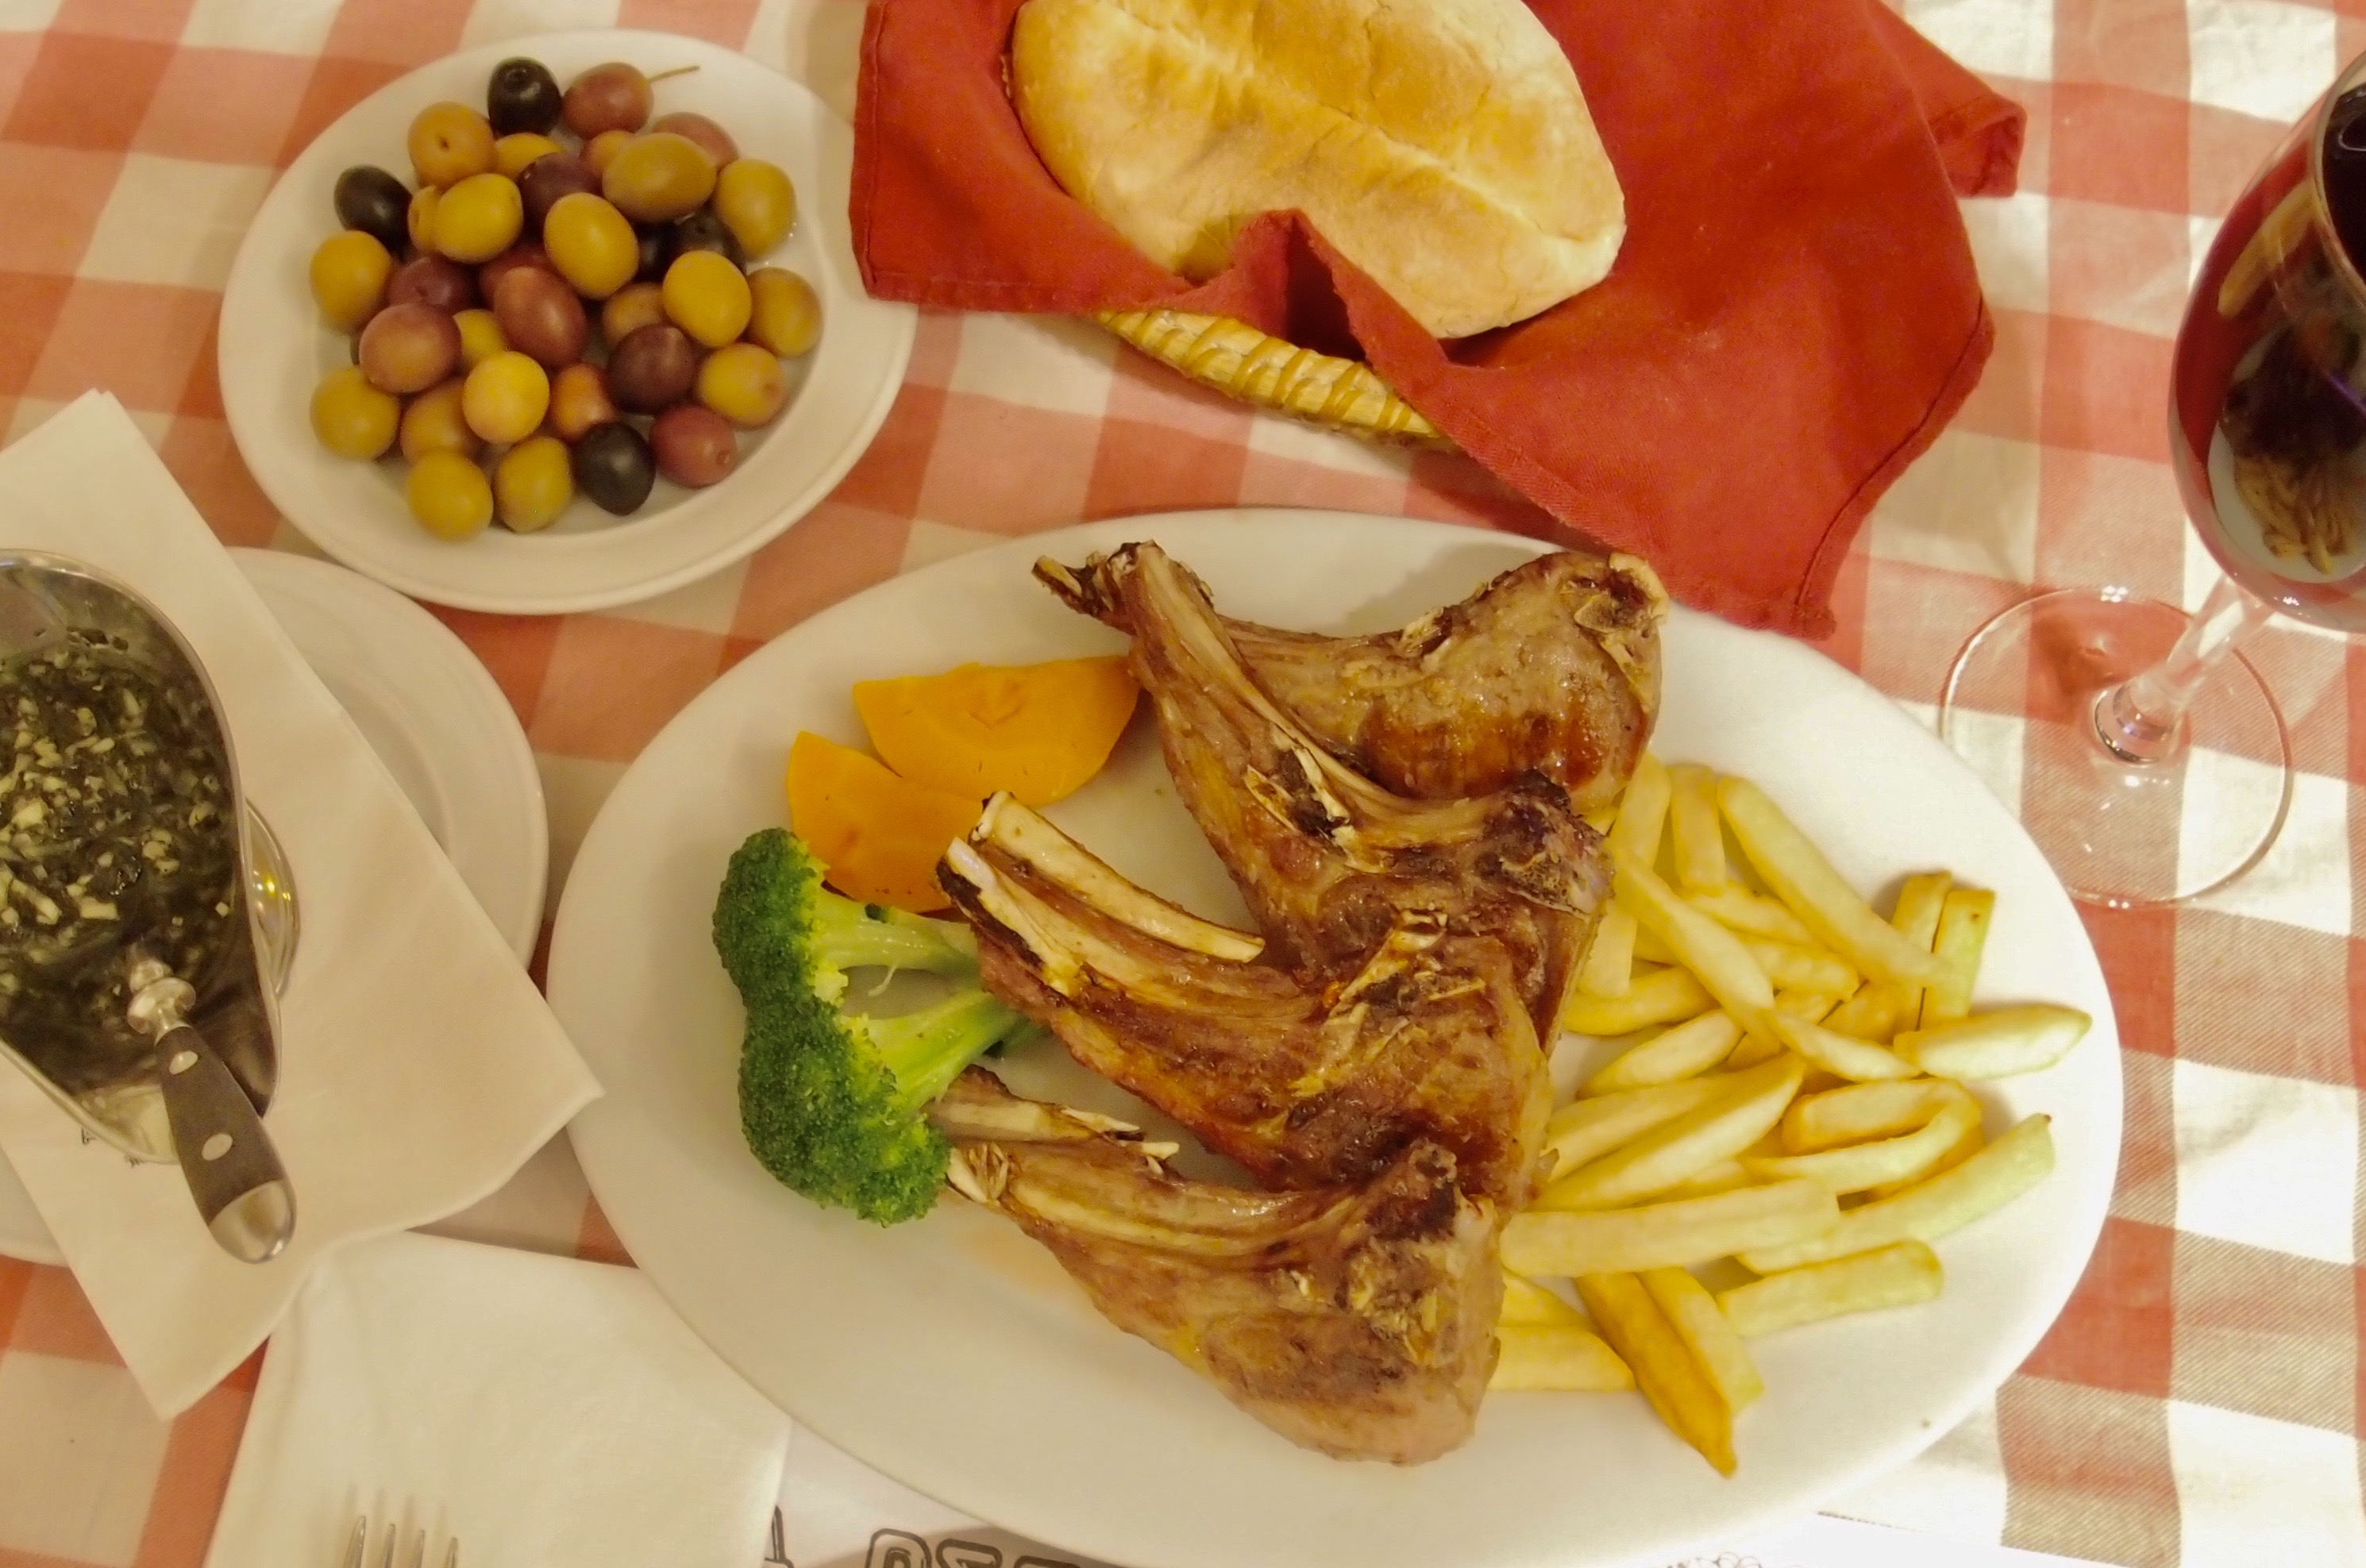 Petisqueira Interior Lamb Chops on top of a Chequered Table Cloth Credits Petisqueira